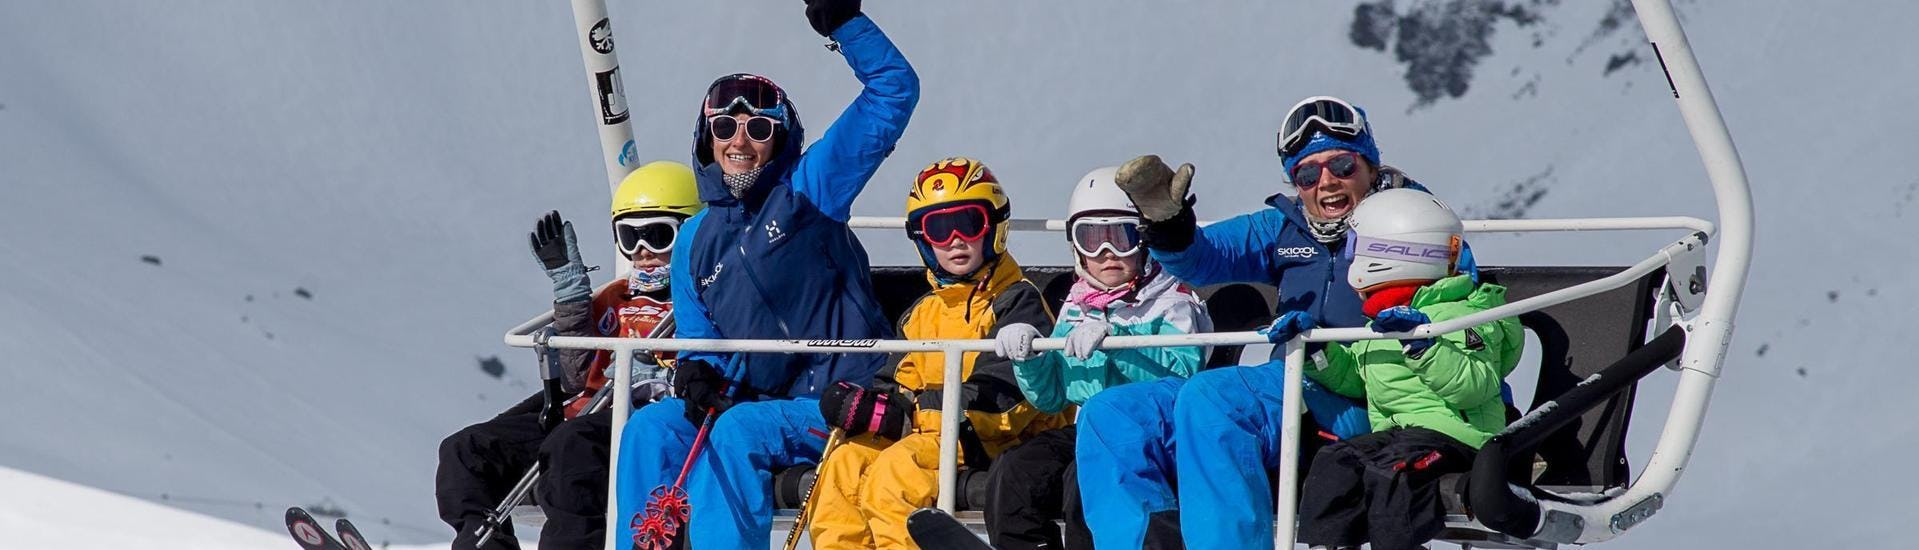 A group of children is riding the chair lift together with their ski instructors from the ski school Ski Cool during their Private Ski Lessons for Kids - All Ages - Low Season in the ski resort of Val Thorens.